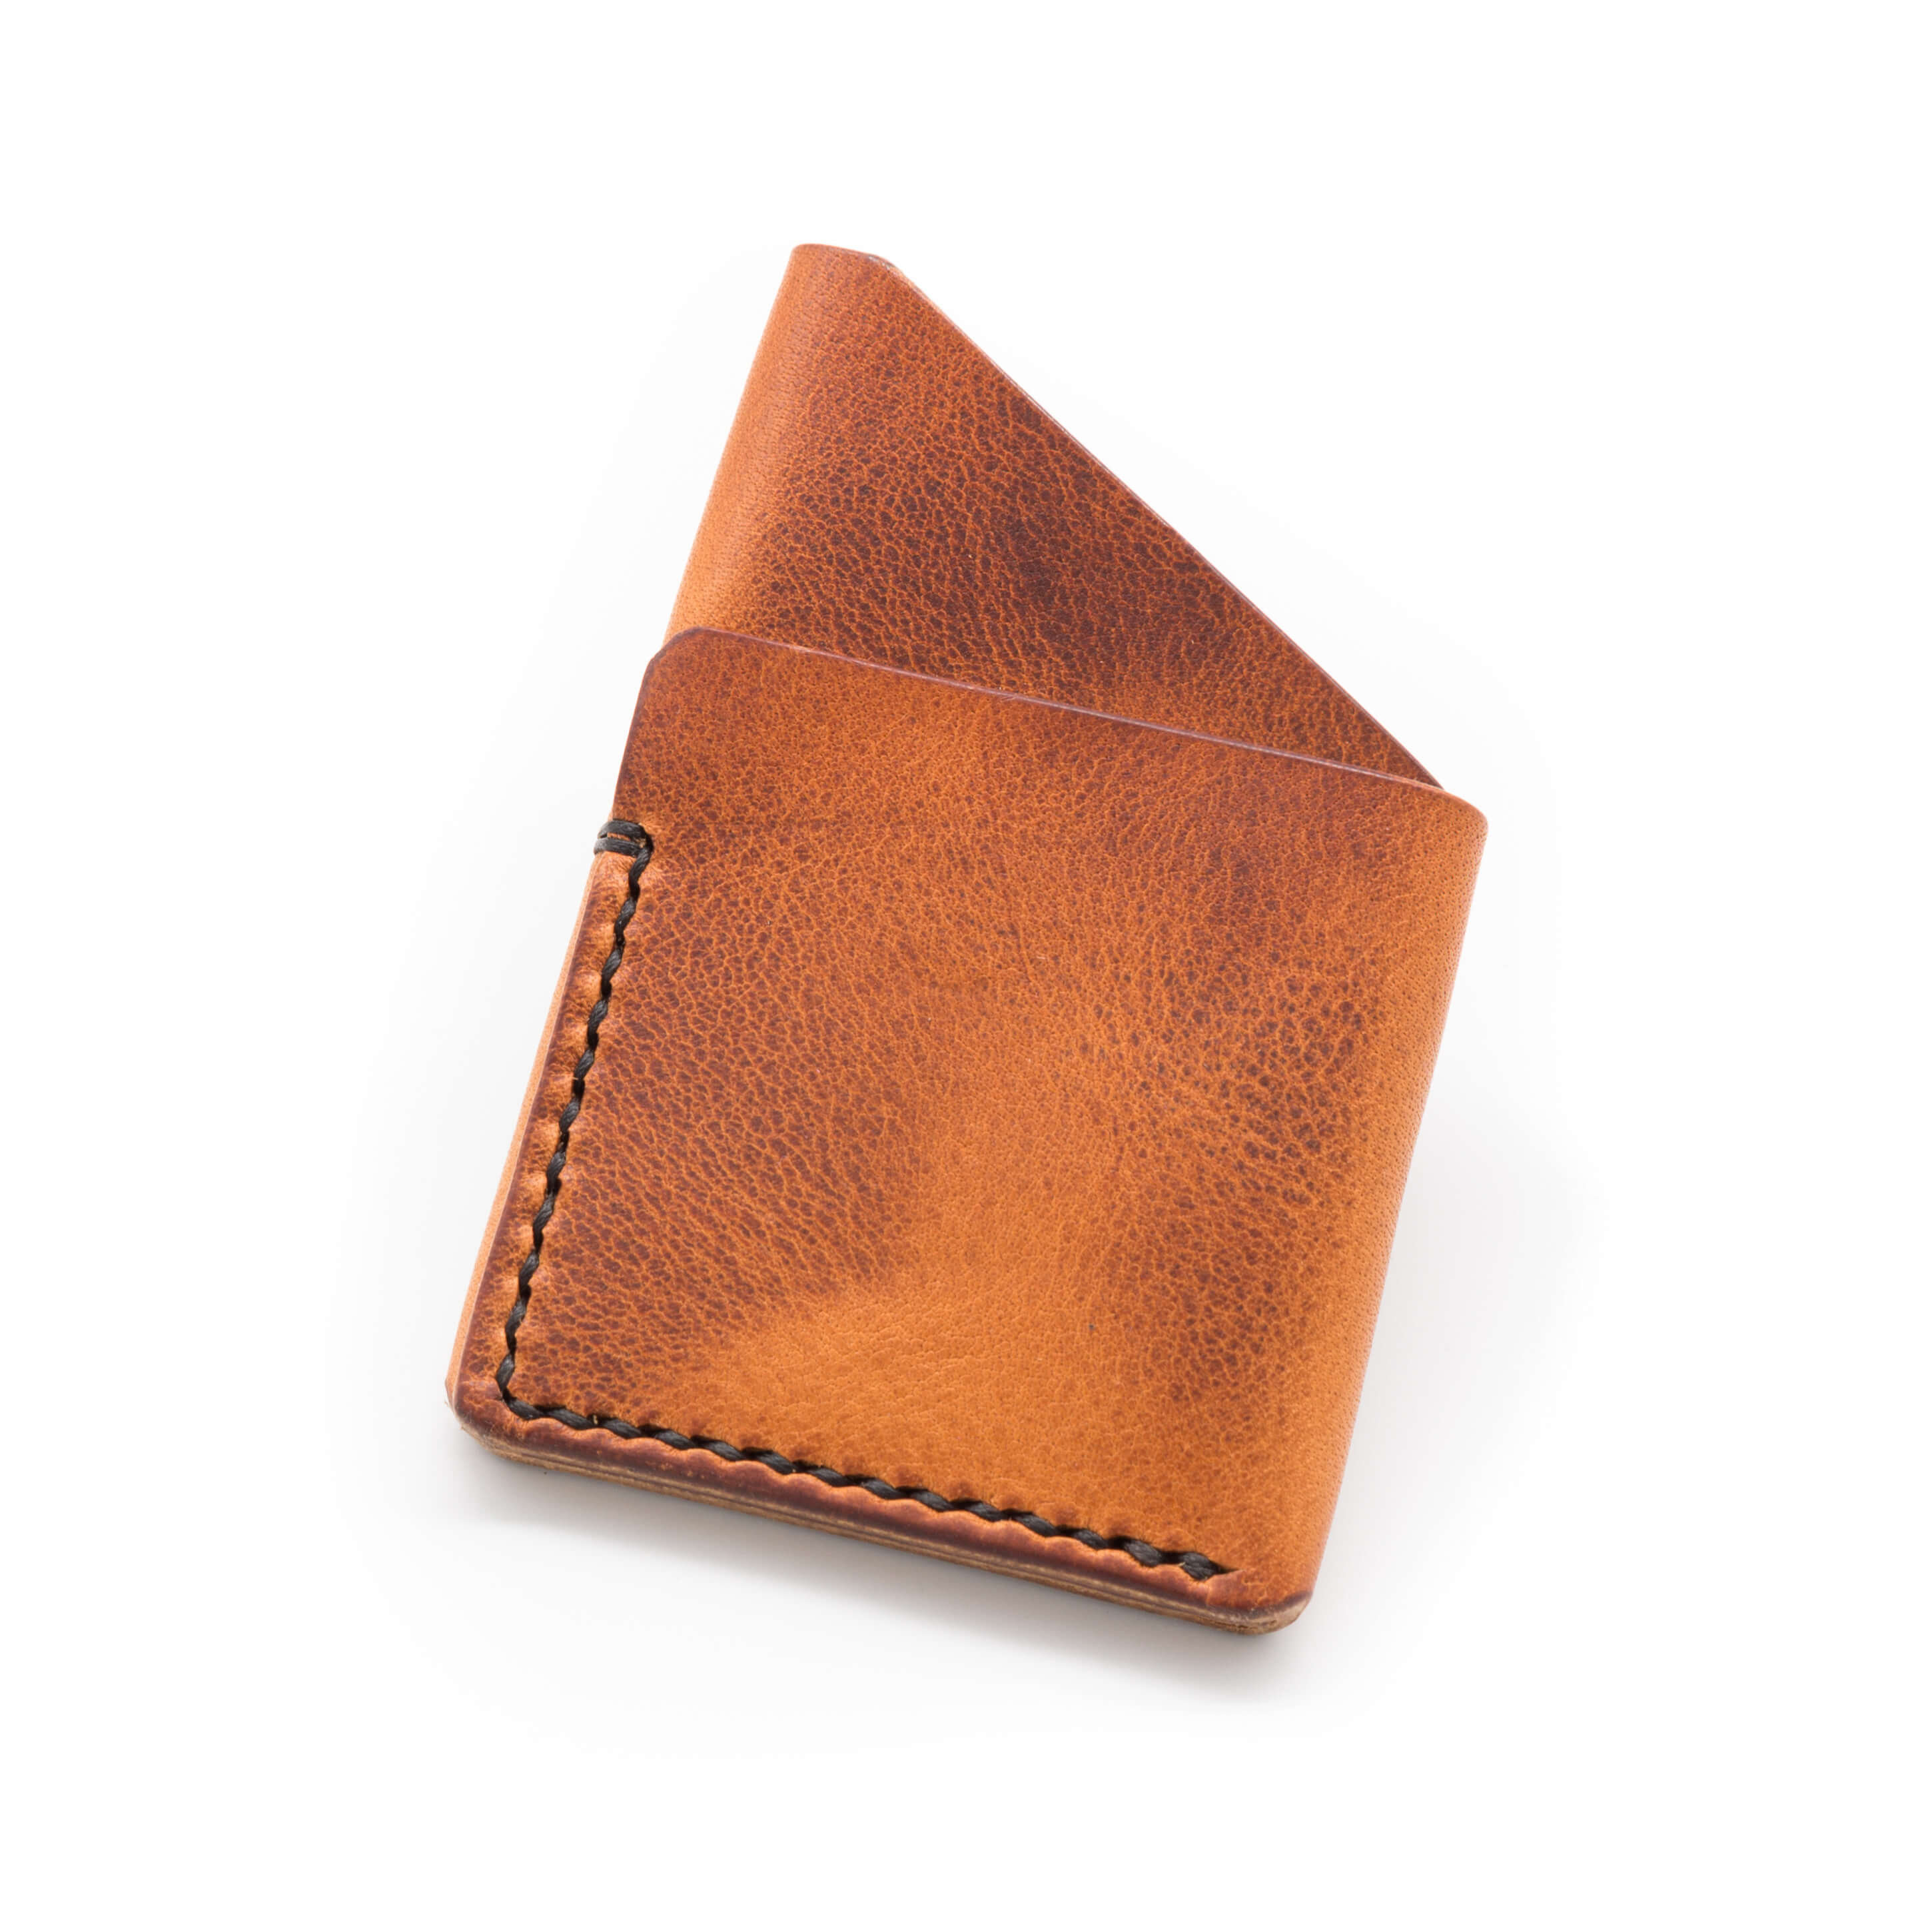 Horween English Tan leather, handmade card holder